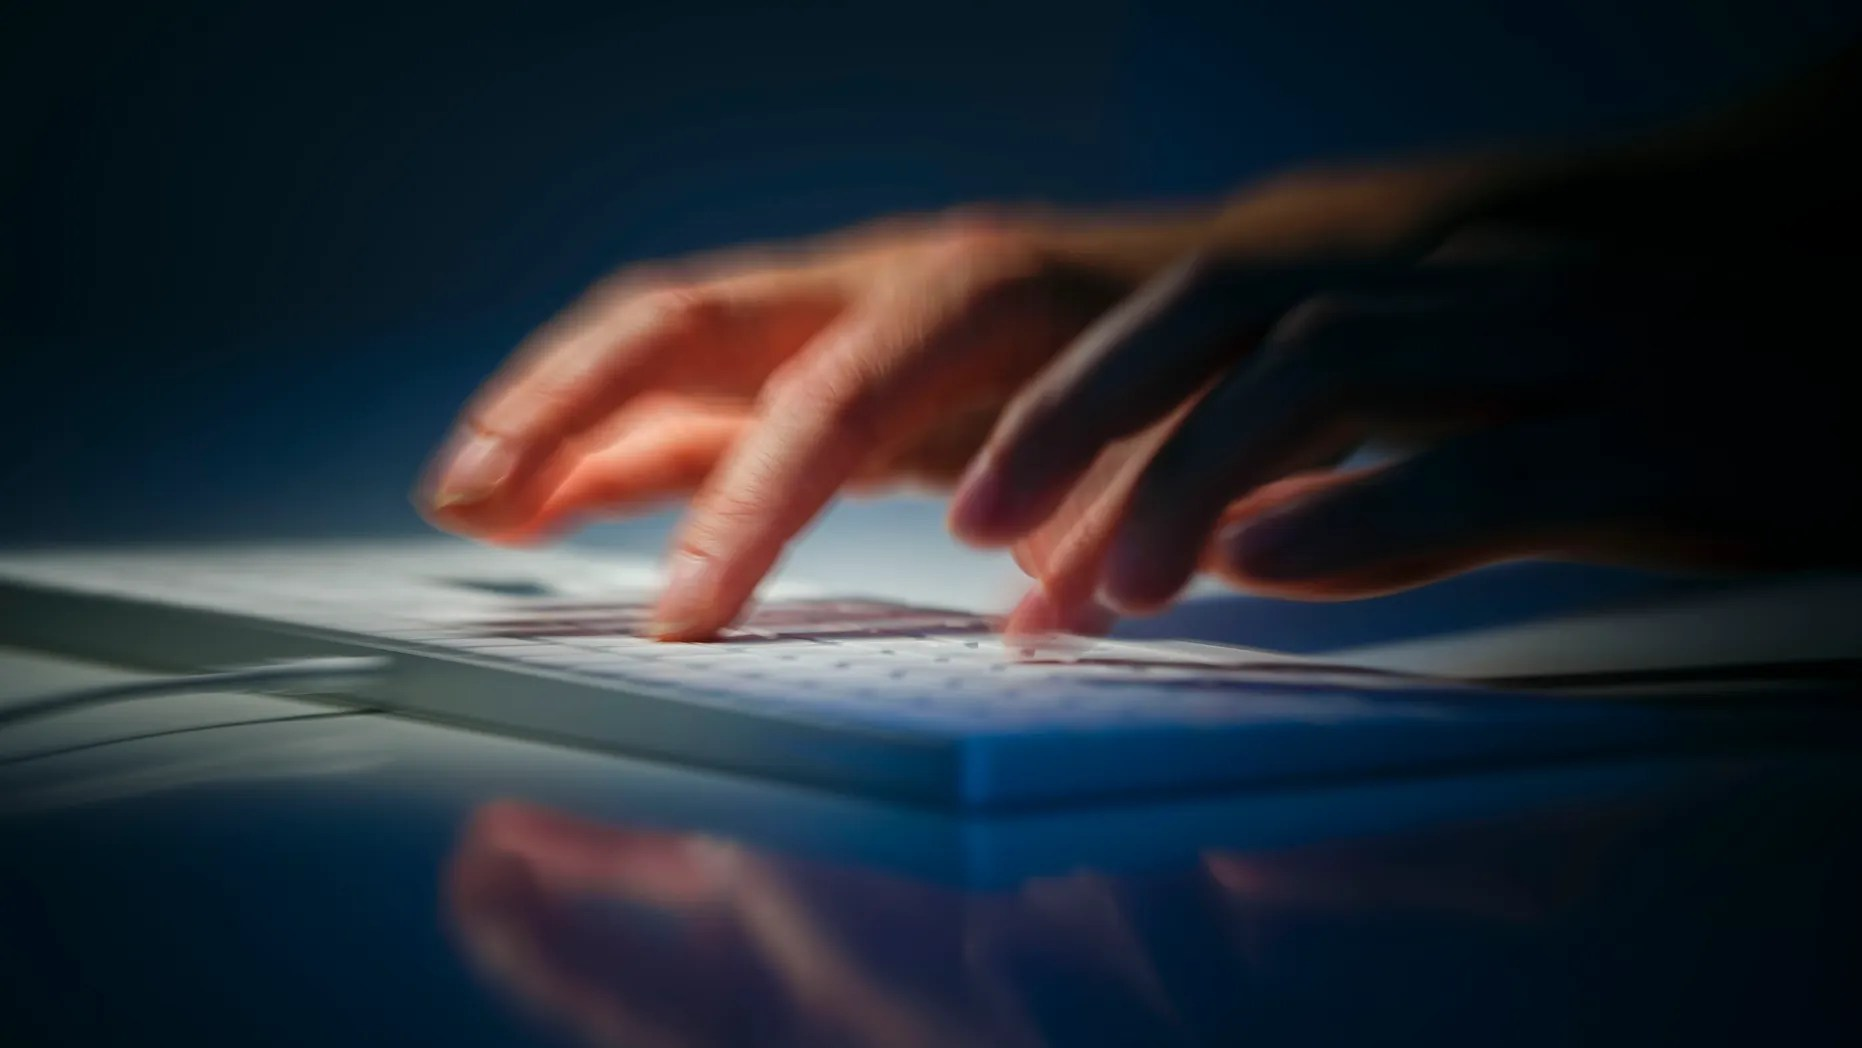 File photo illustration -hands write on a computer keyboard on August 28, 2019 in Berlin, Germany. (Photo by Thomas Trutschel/Photothek via Getty Images)